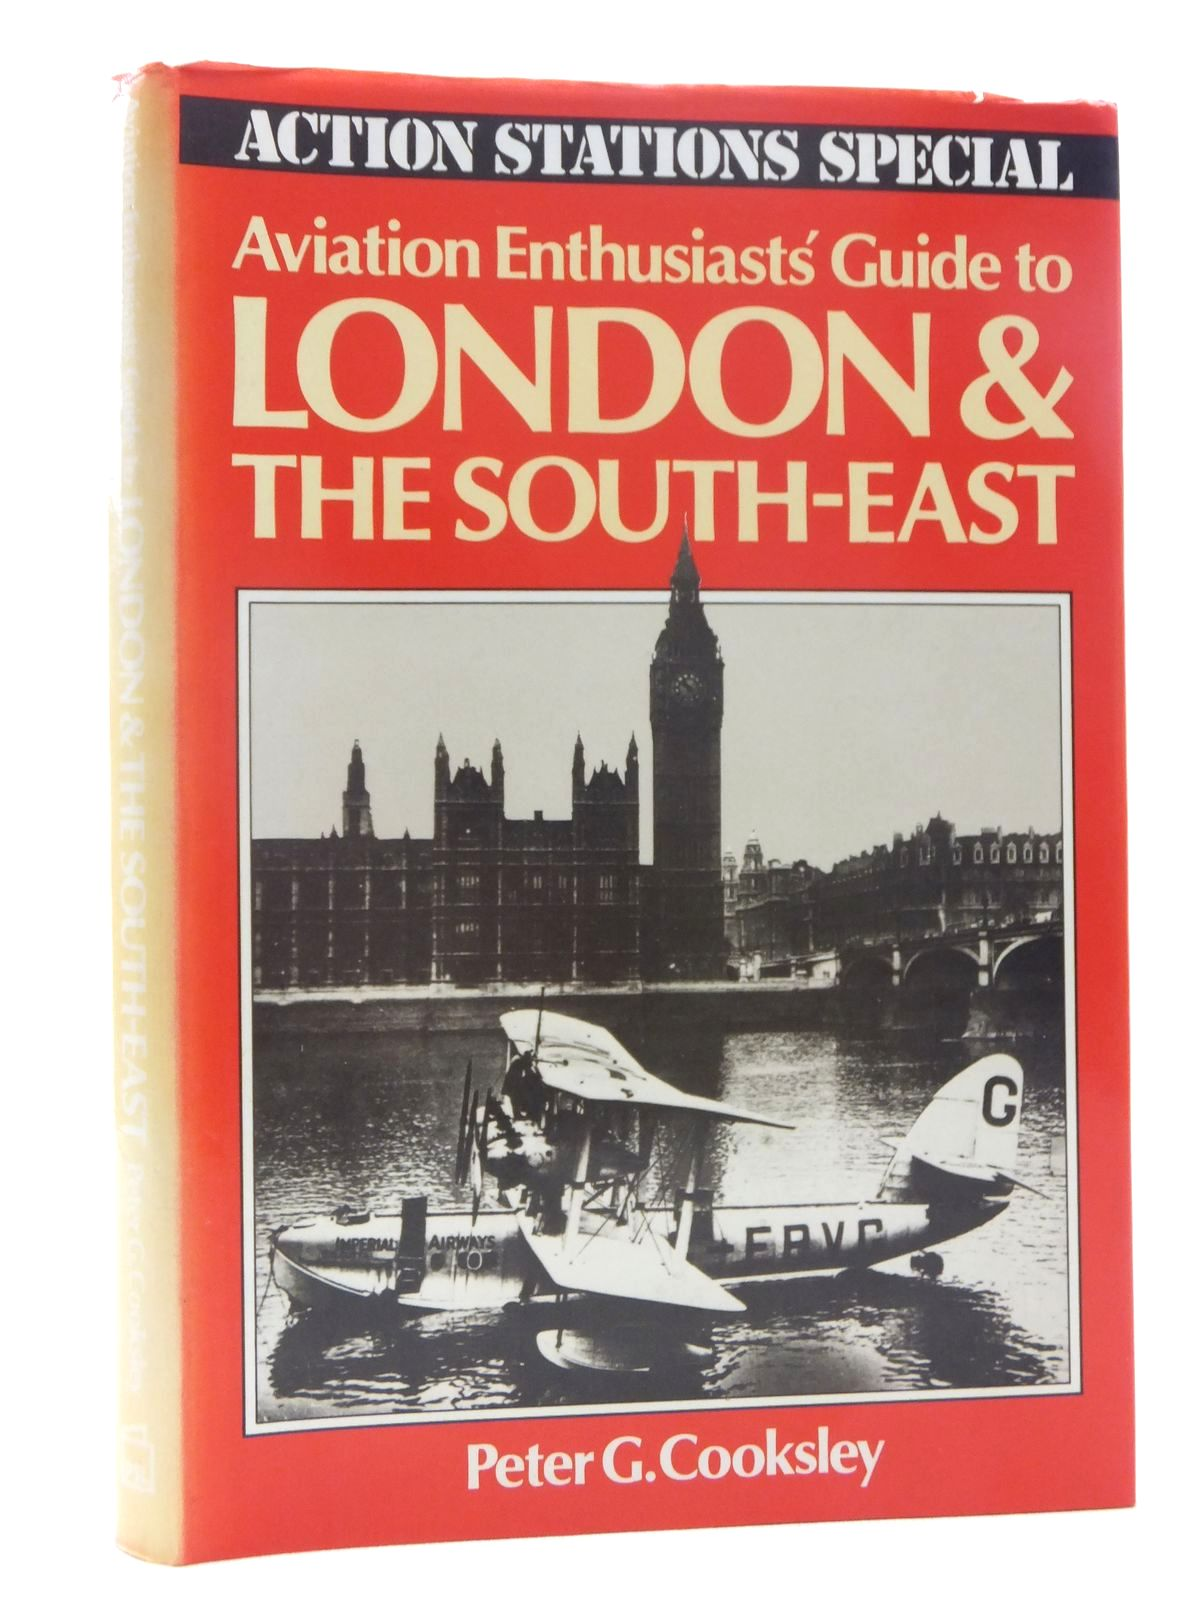 Photo of AVIATION ENTHUSIAST'S GUIDE TO LONDON & THE SOUTH-EAST written by Cooksley, Peter G. published by Patrick Stephens (STOCK CODE: 1610088)  for sale by Stella & Rose's Books